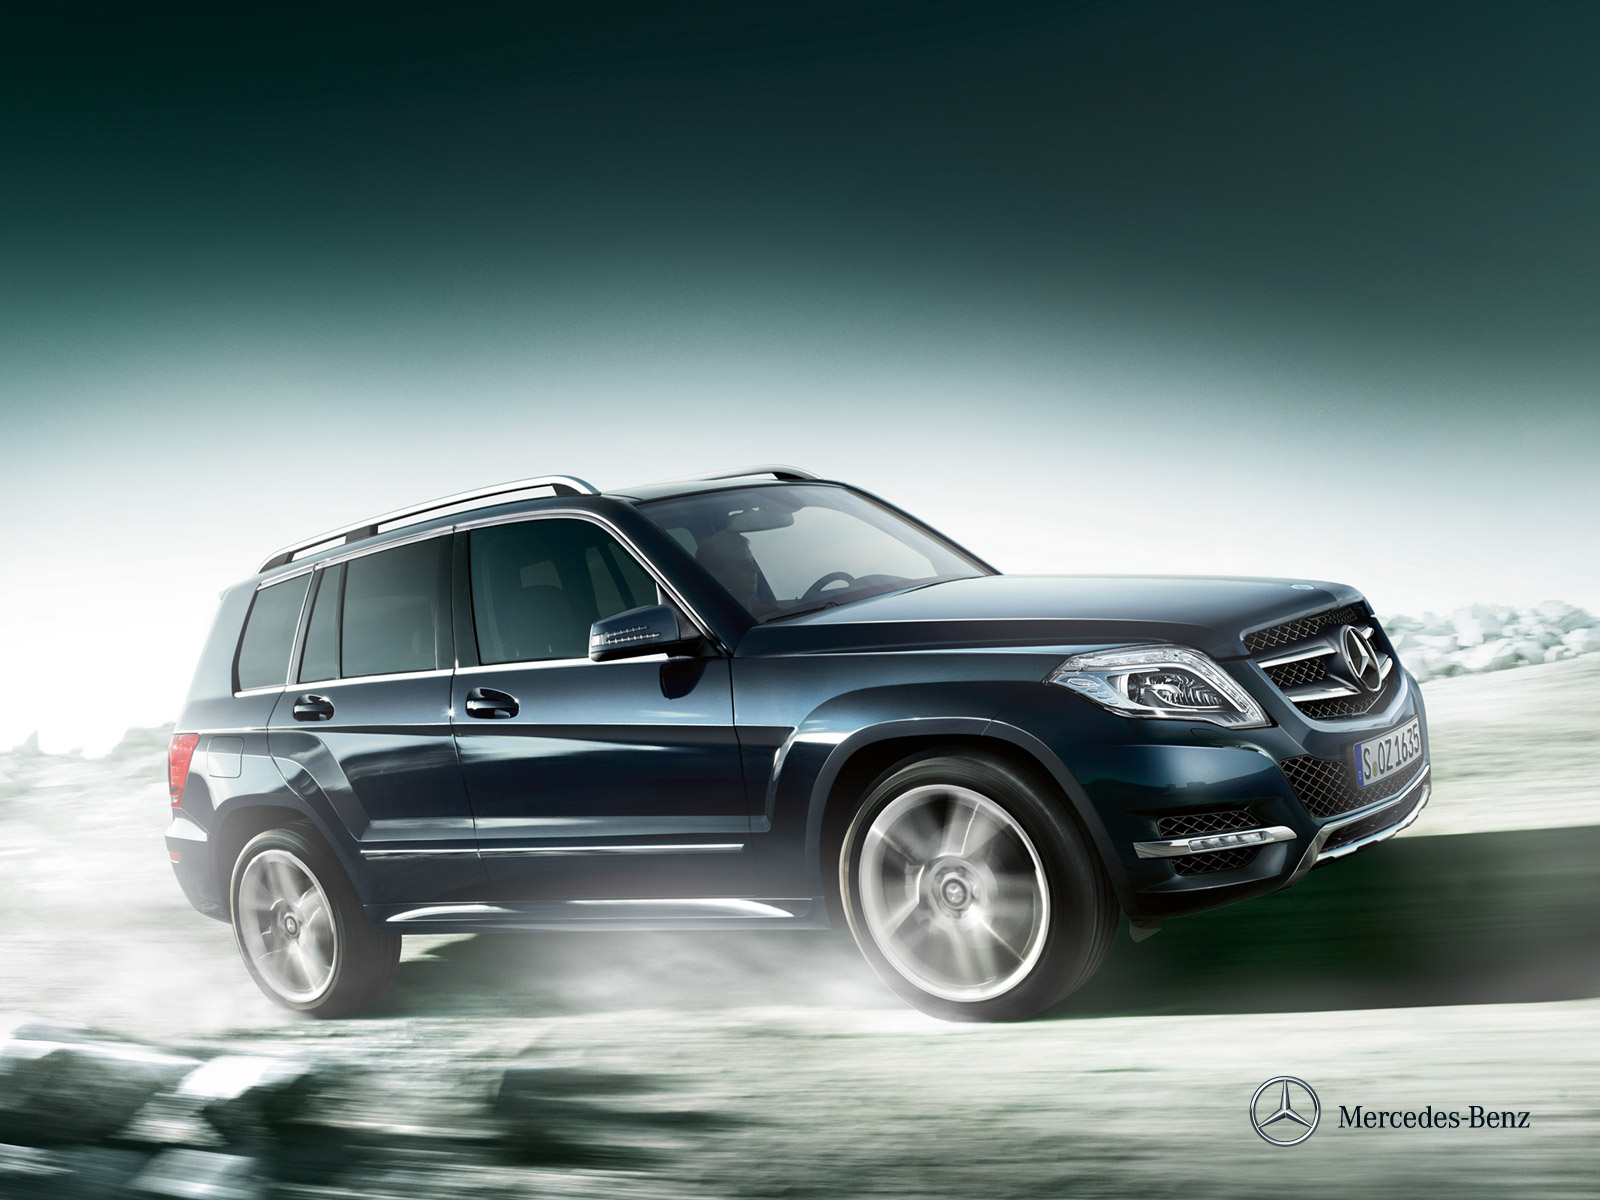 Mercedes benz glk class 2012 glk 300 4matic in uae new for Mercedes benz bahrain